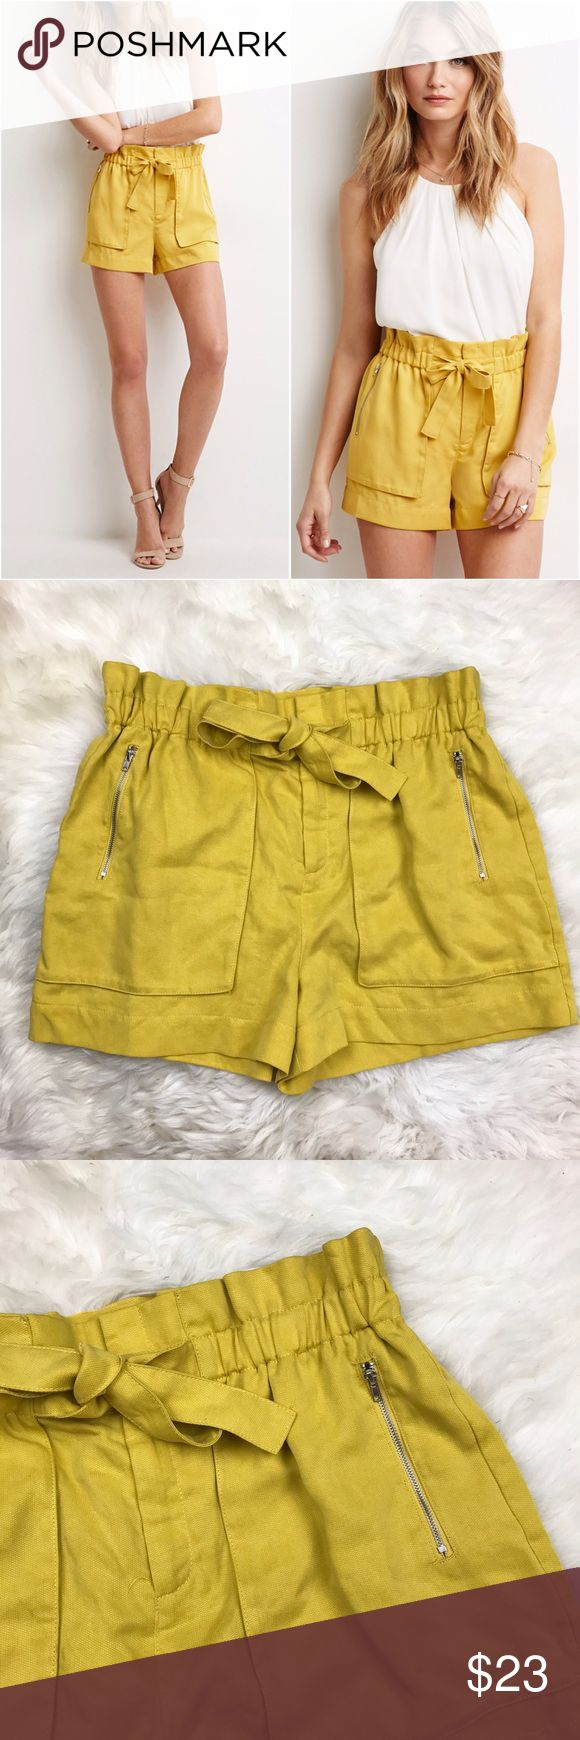 "Forever 21 Yellow High Waist Paper Bag Shorts In excellent used condition. Two front silver zipper pockets, no back pockets, center front zipper with hook clasp closure. Drawstring tied waist, elastic waistband. Waist measures 16"" laying flat can stretch to 21"", front rise is 13"", inseam is 3"", length is 15"". ❌NO TRADES OR PAYPAL❌ Forever 21 Shorts"